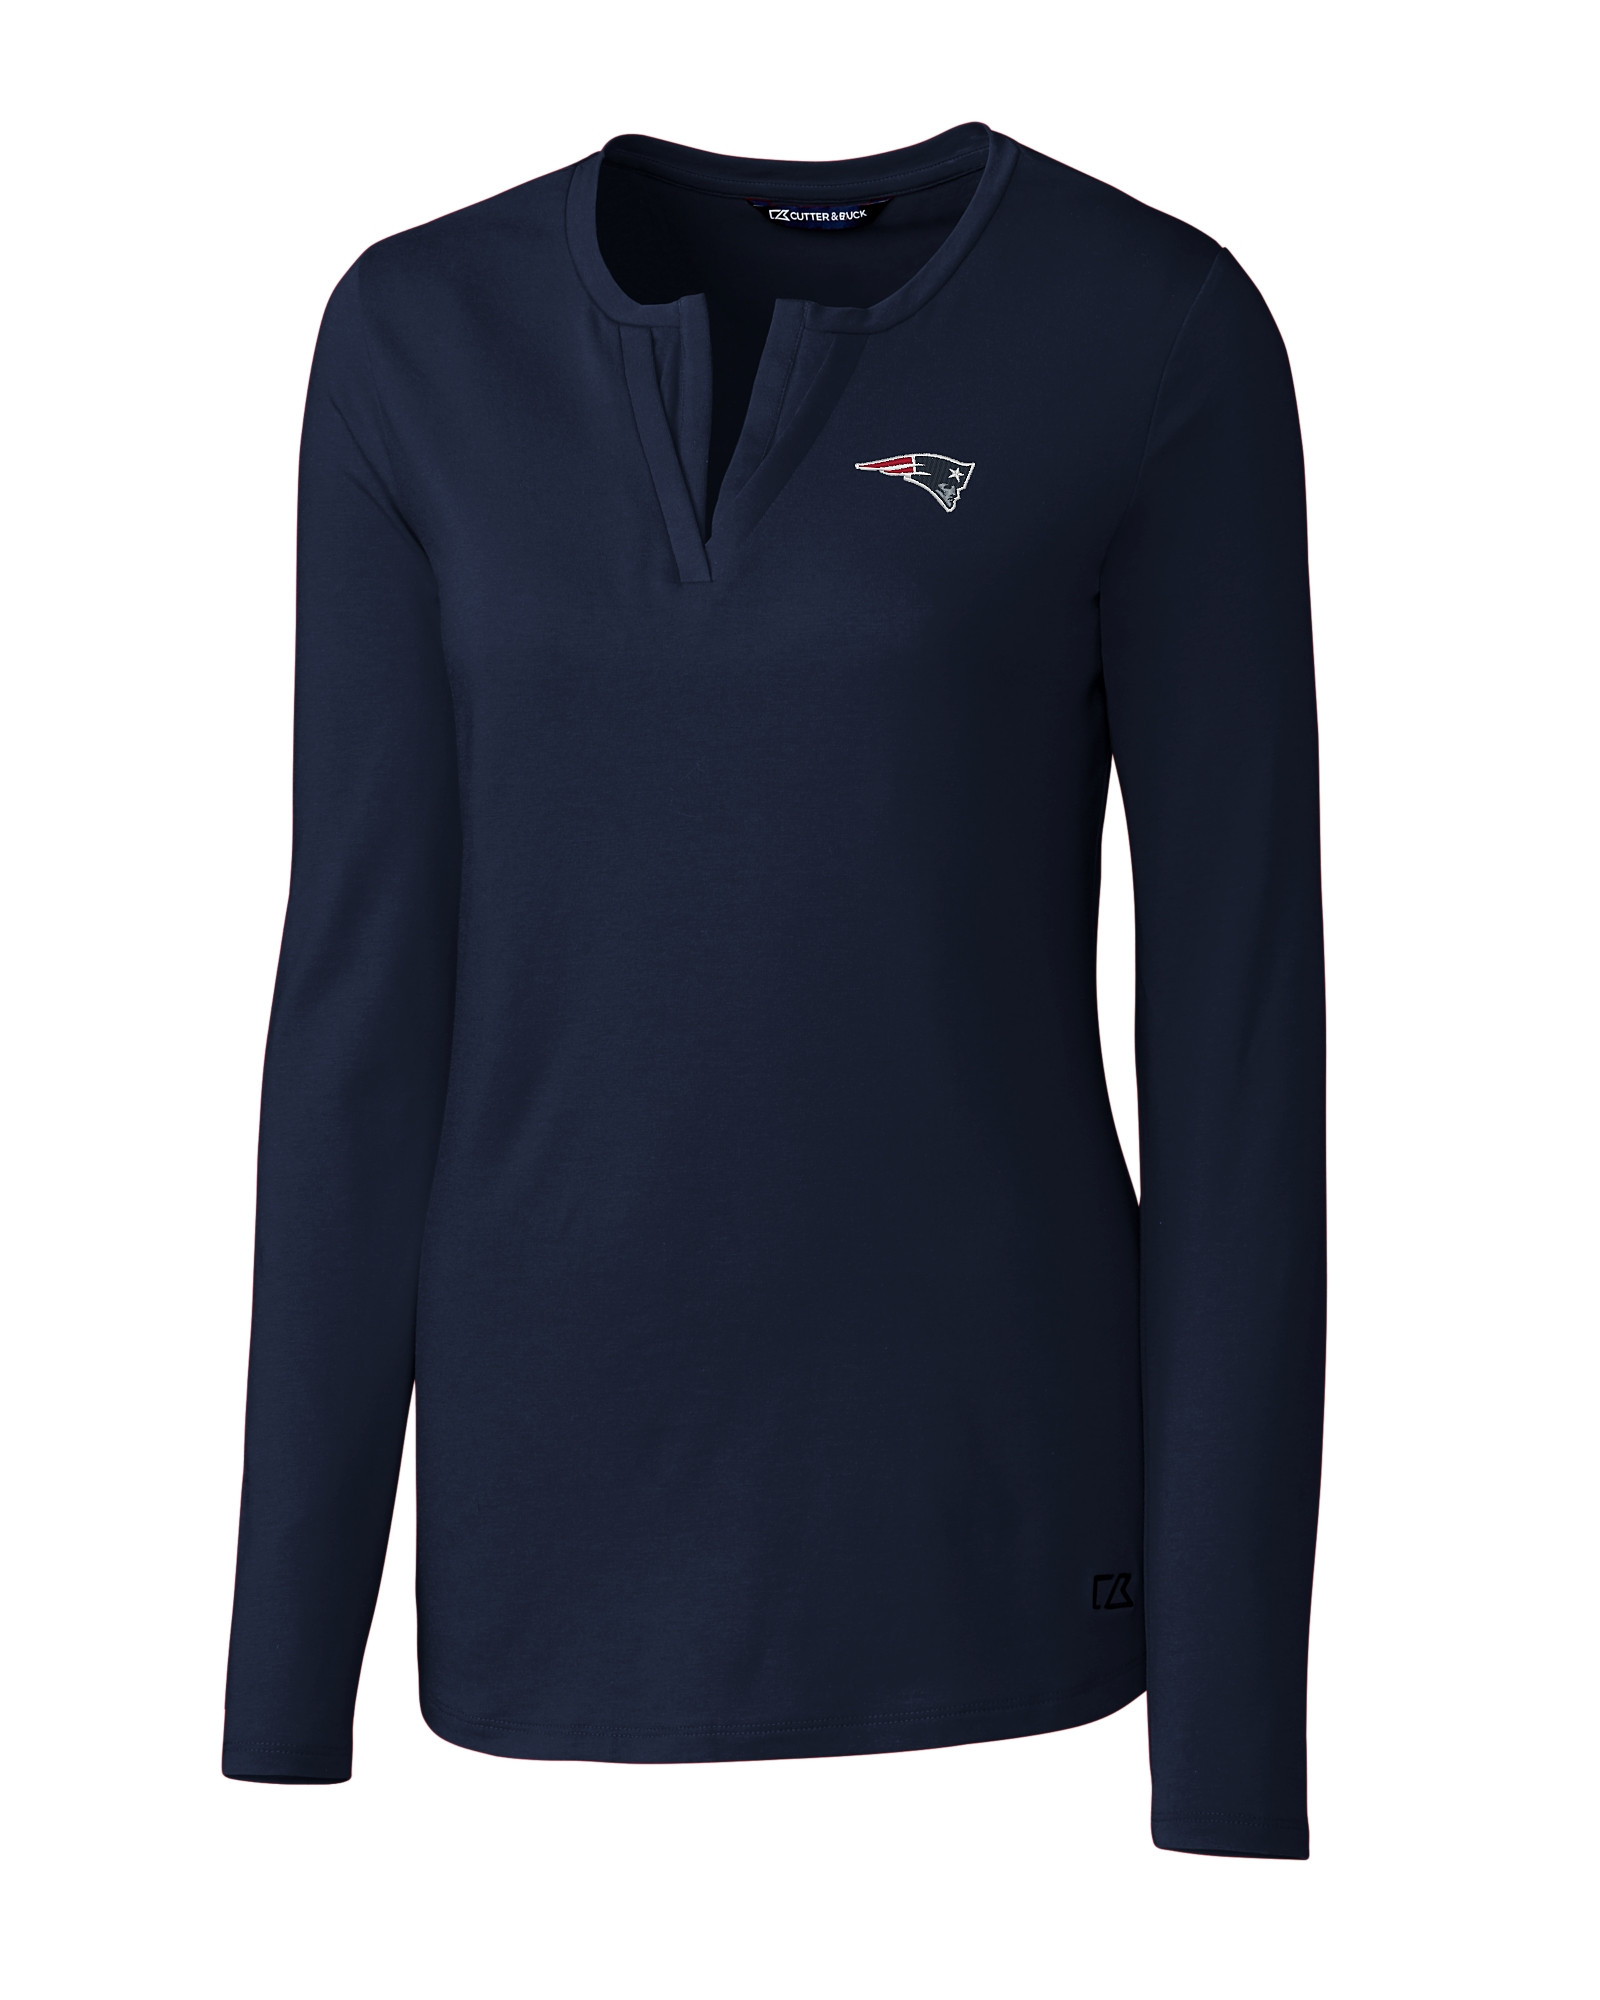 23a61caf1d4 New England Patriots Ladies' Avail Double V-Neck